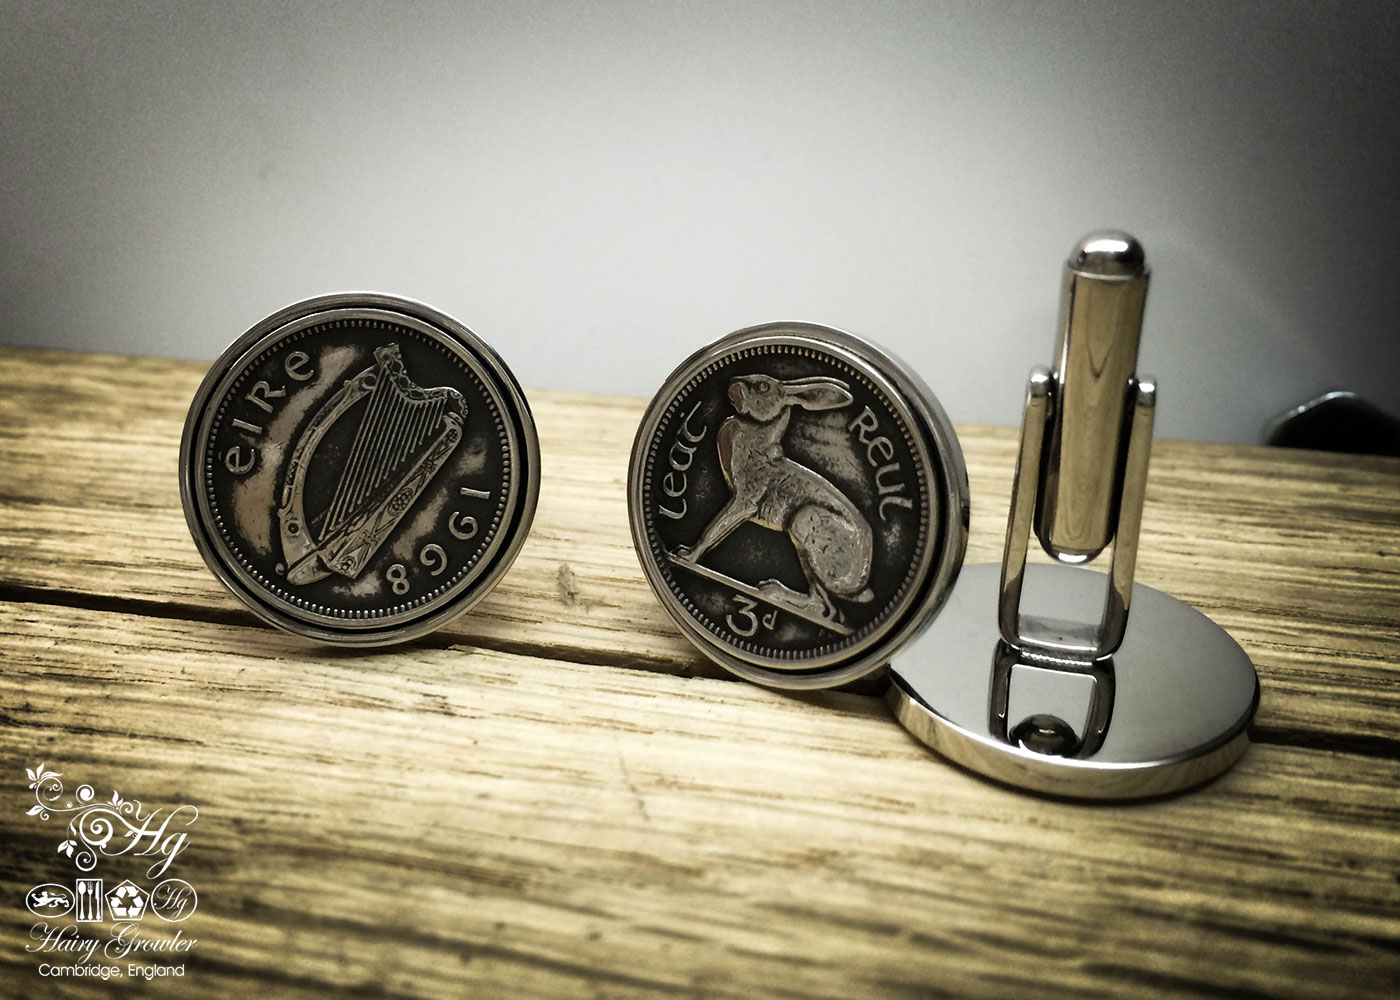 Irish hare threepence coin cufflinks handmade in the Hg workshop